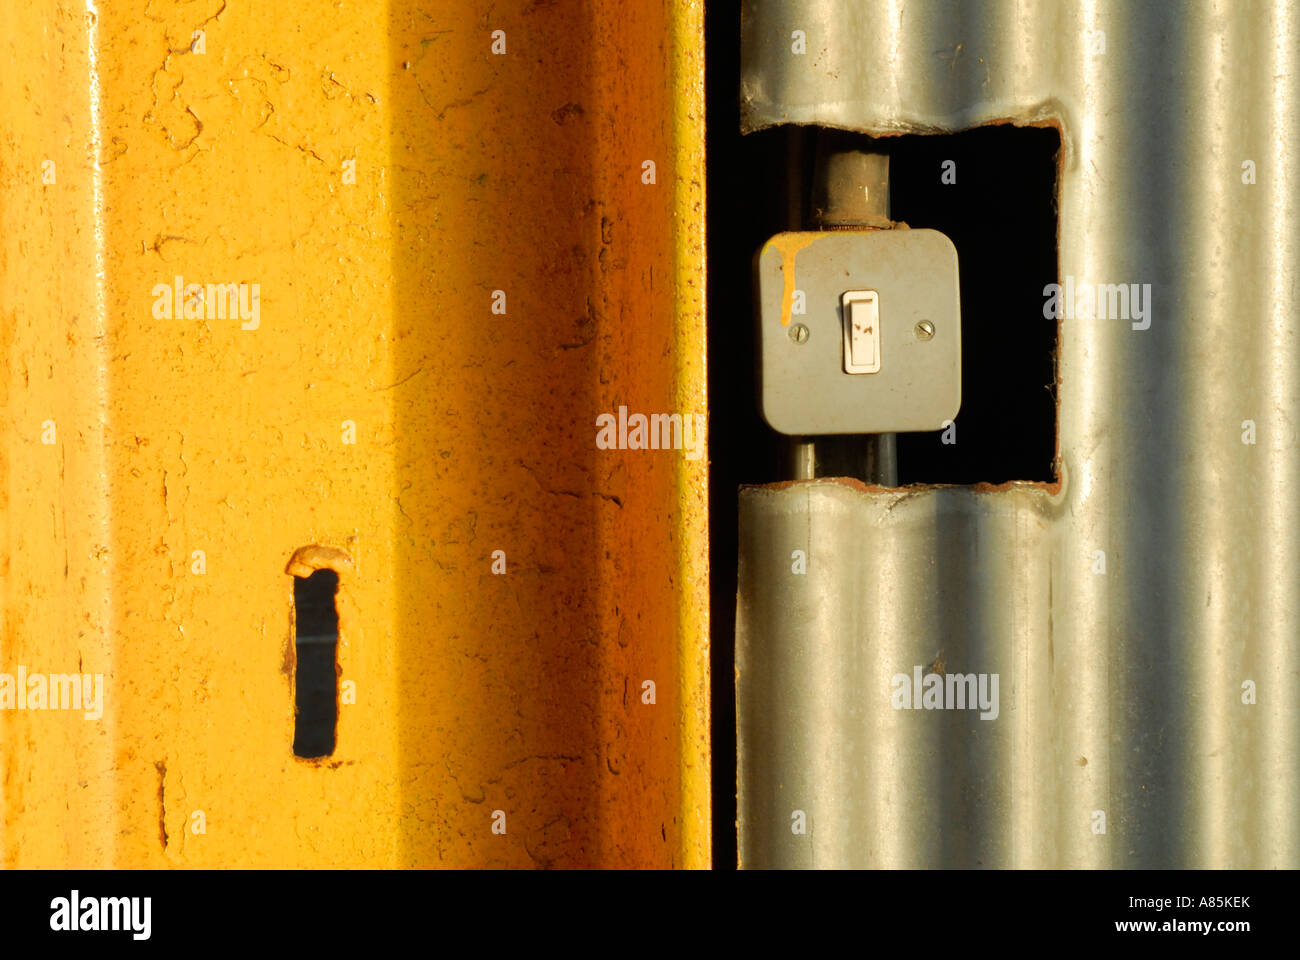 Industrial Lightswitch Stock Photo: 11995482 - Alamy